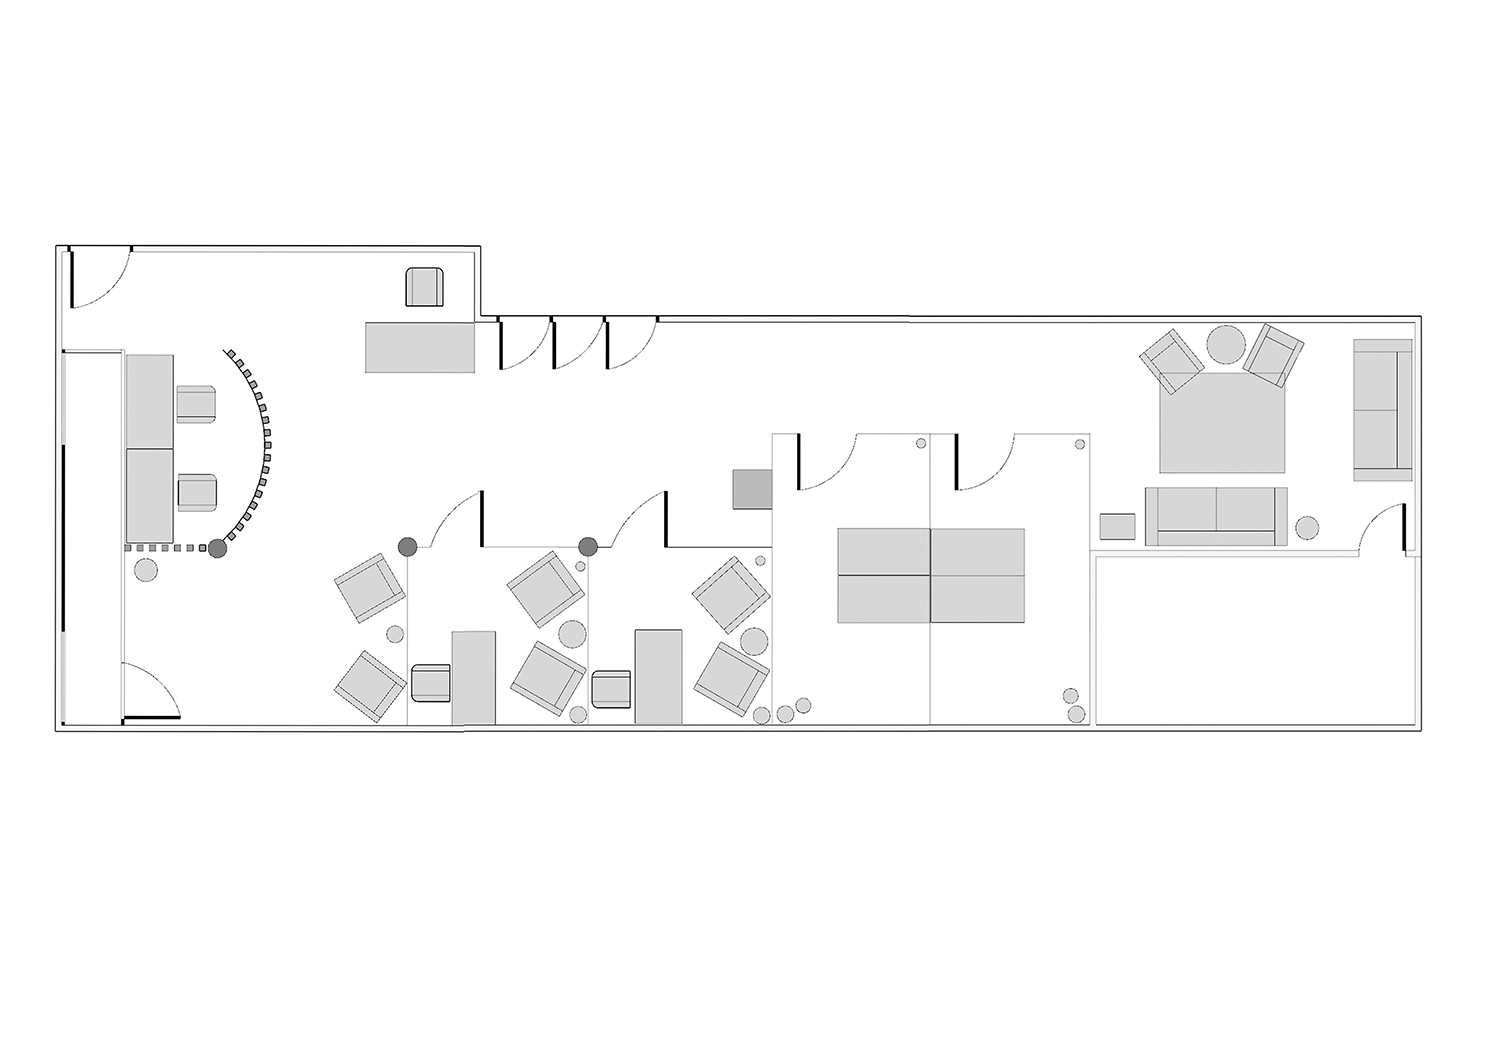 A scale floorplan with the proposed new layout.